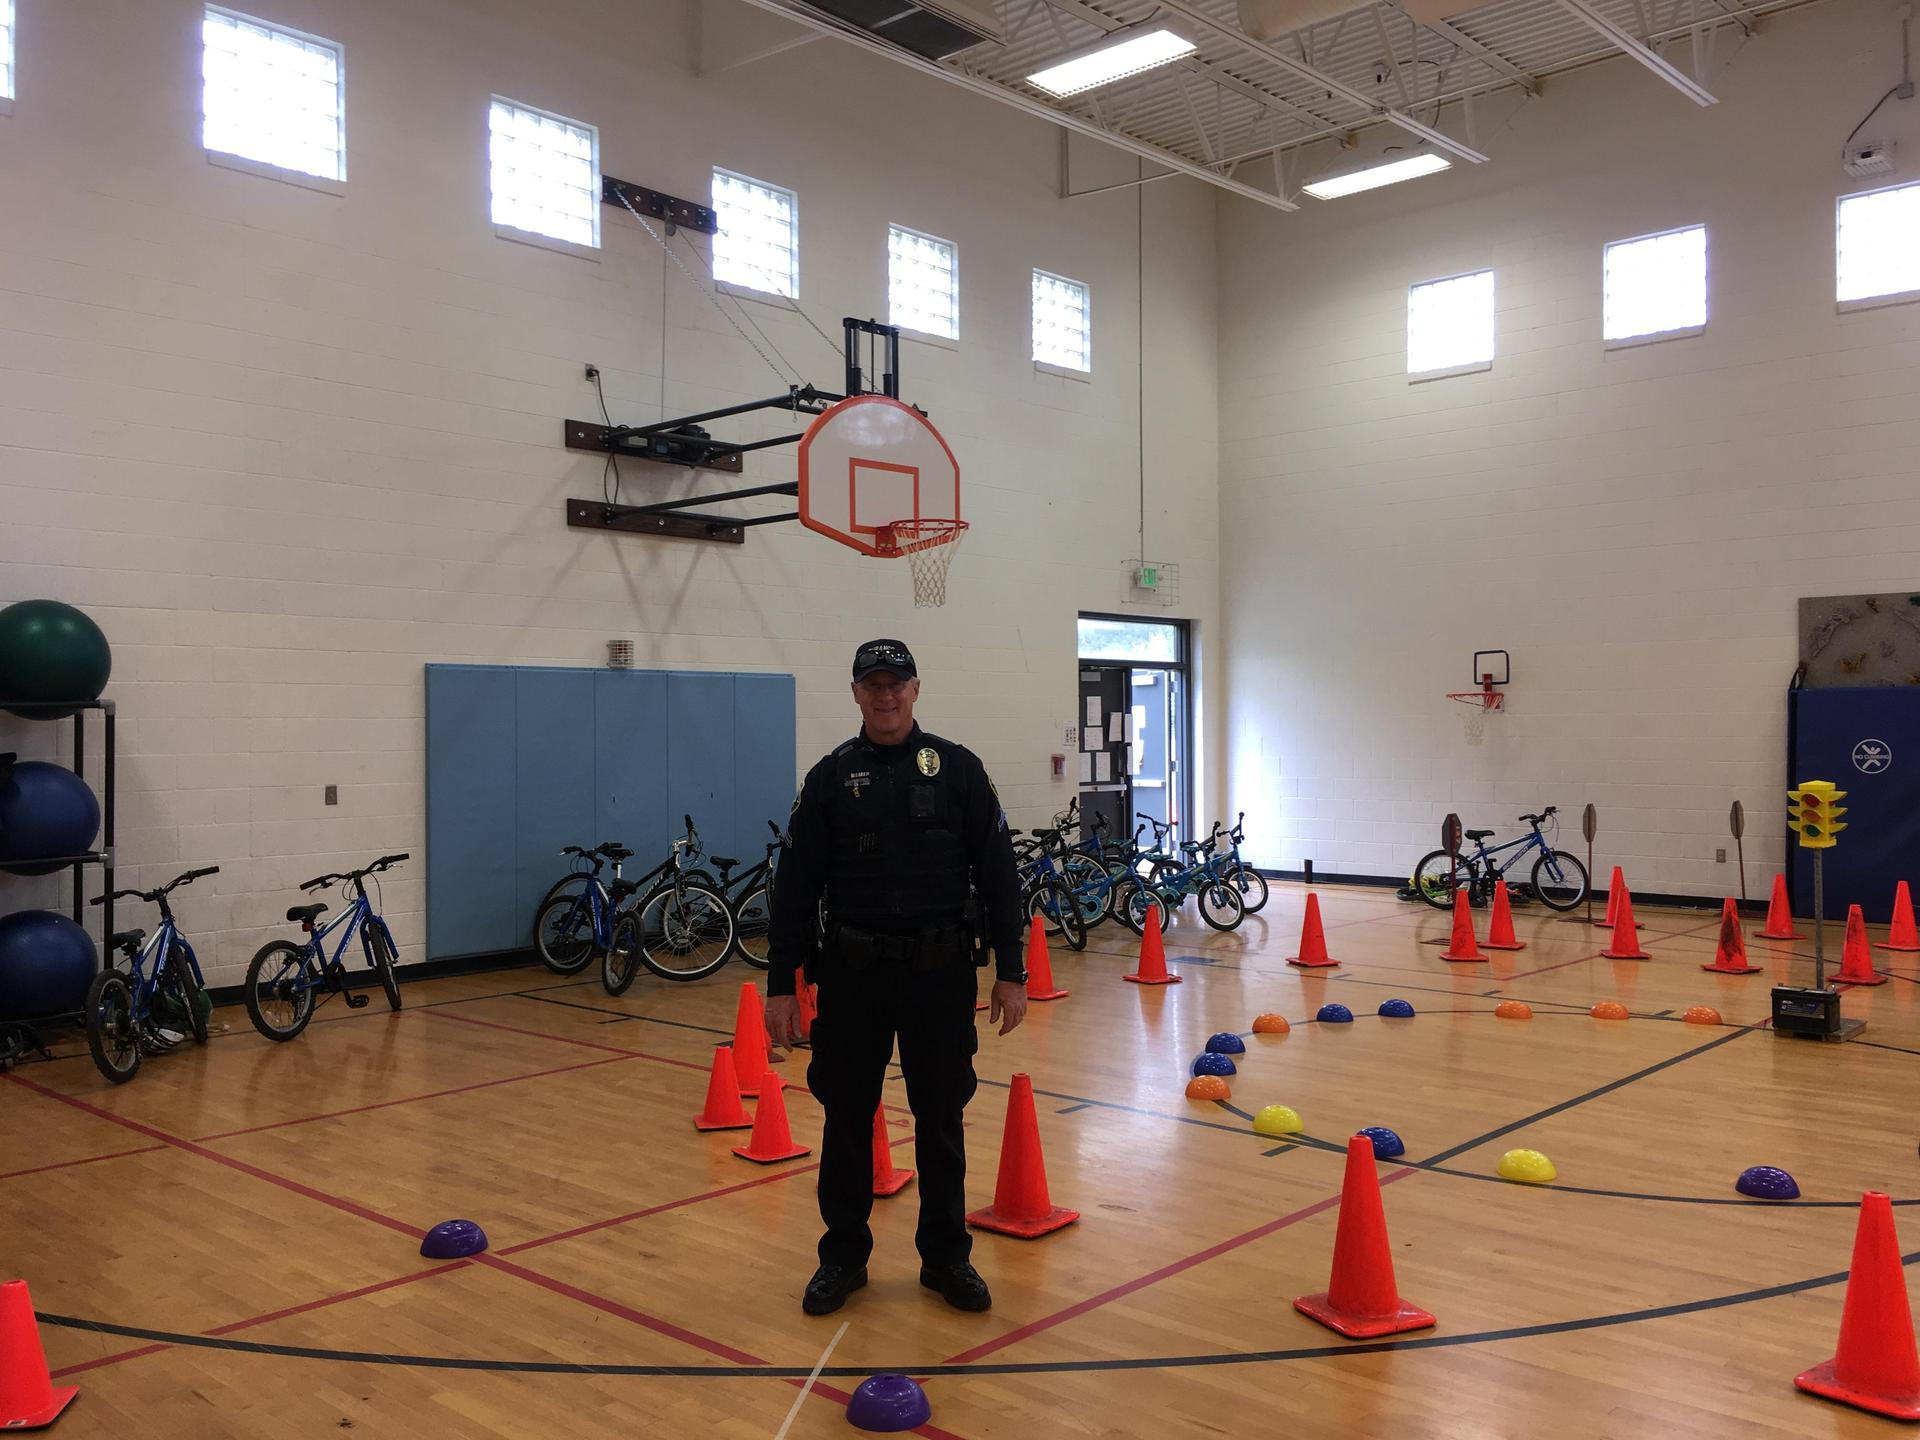 Officer at bike rodeo